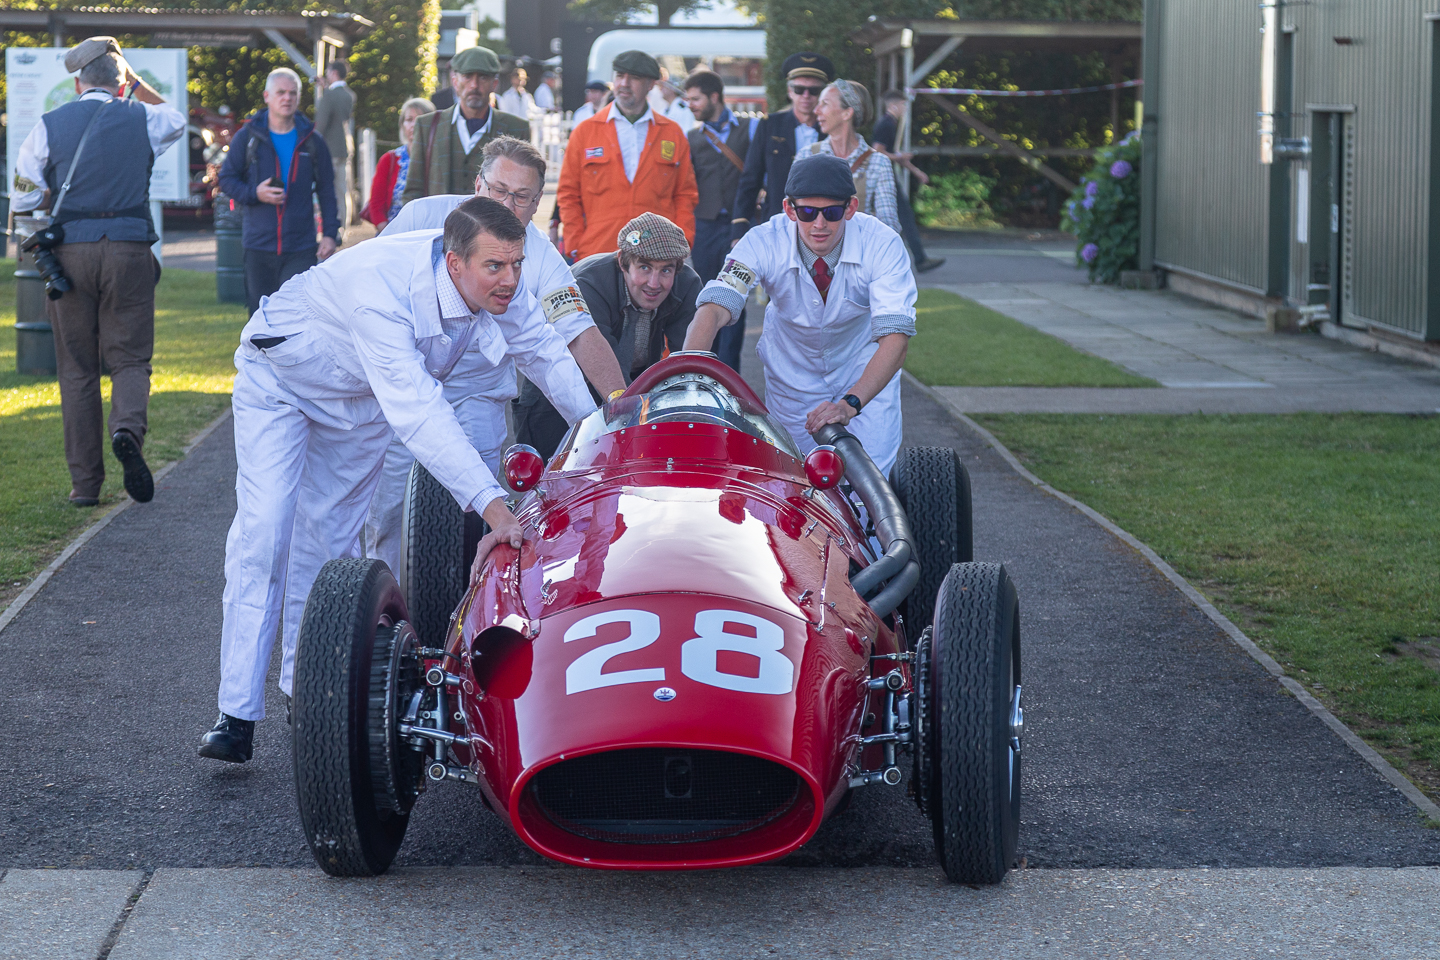 Pit crew push vintage race car through the paddock at Goodwood Revival